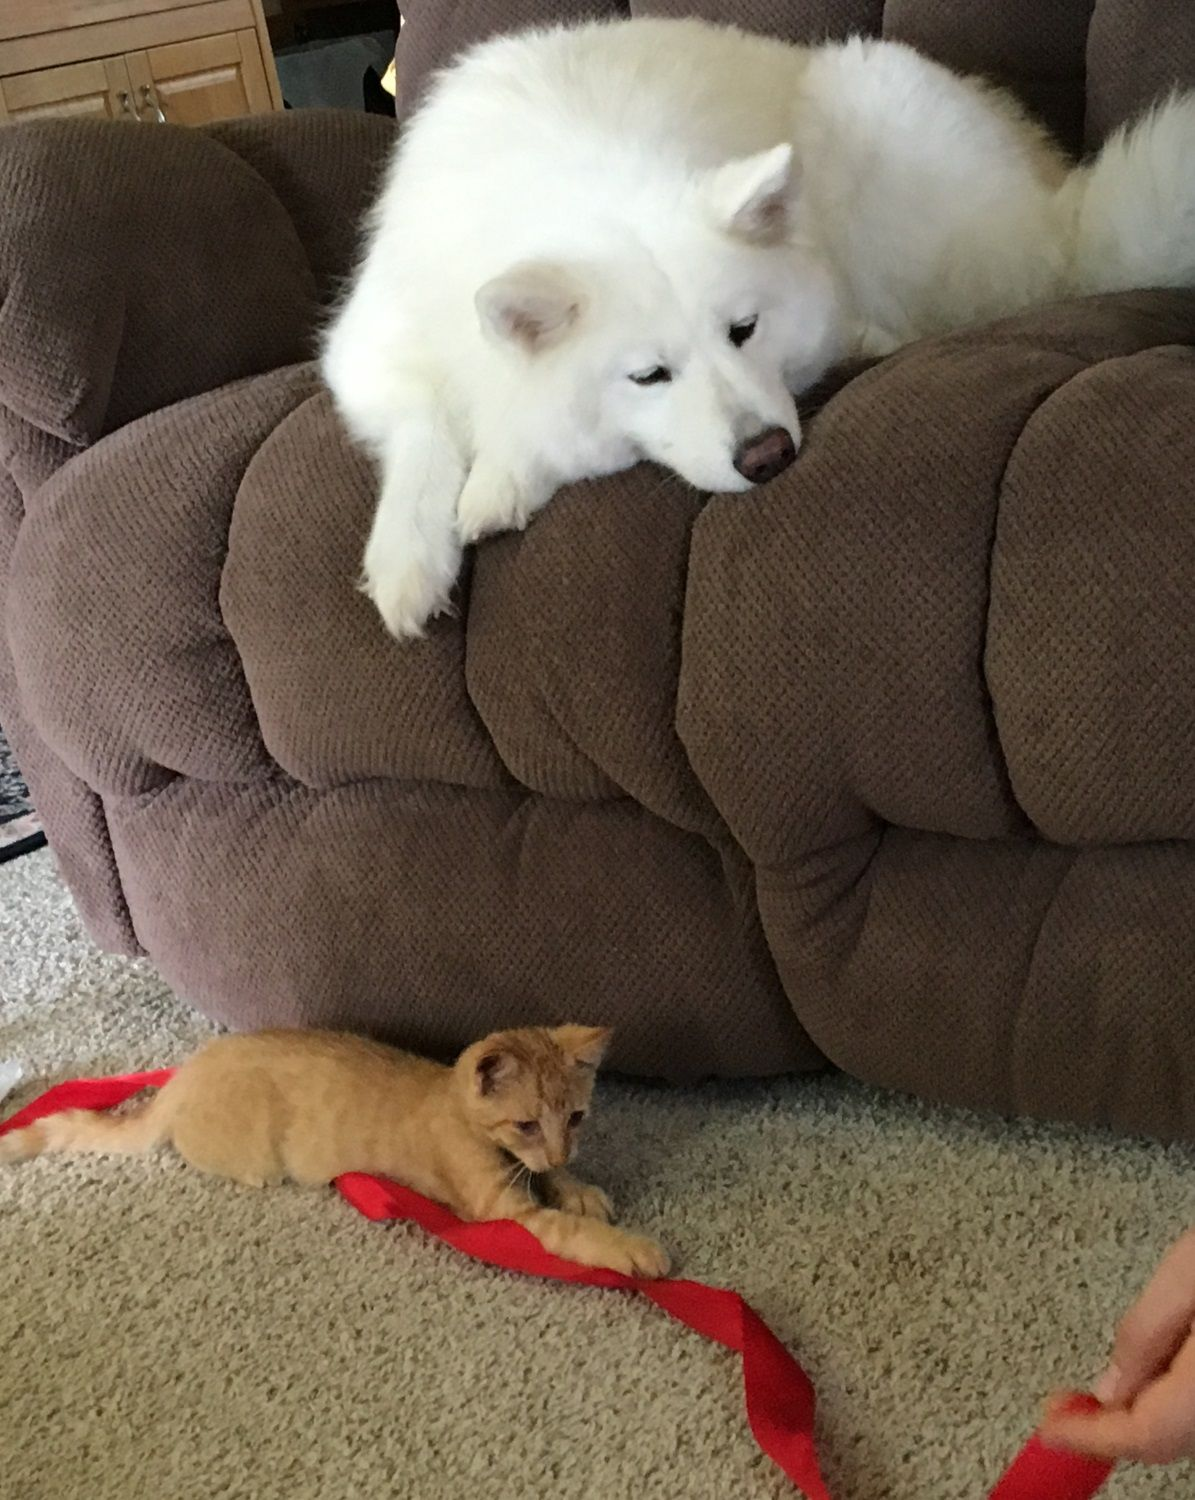 Pin by FlyDoda on Cat in 2020 Cute animals, Samoyed dogs